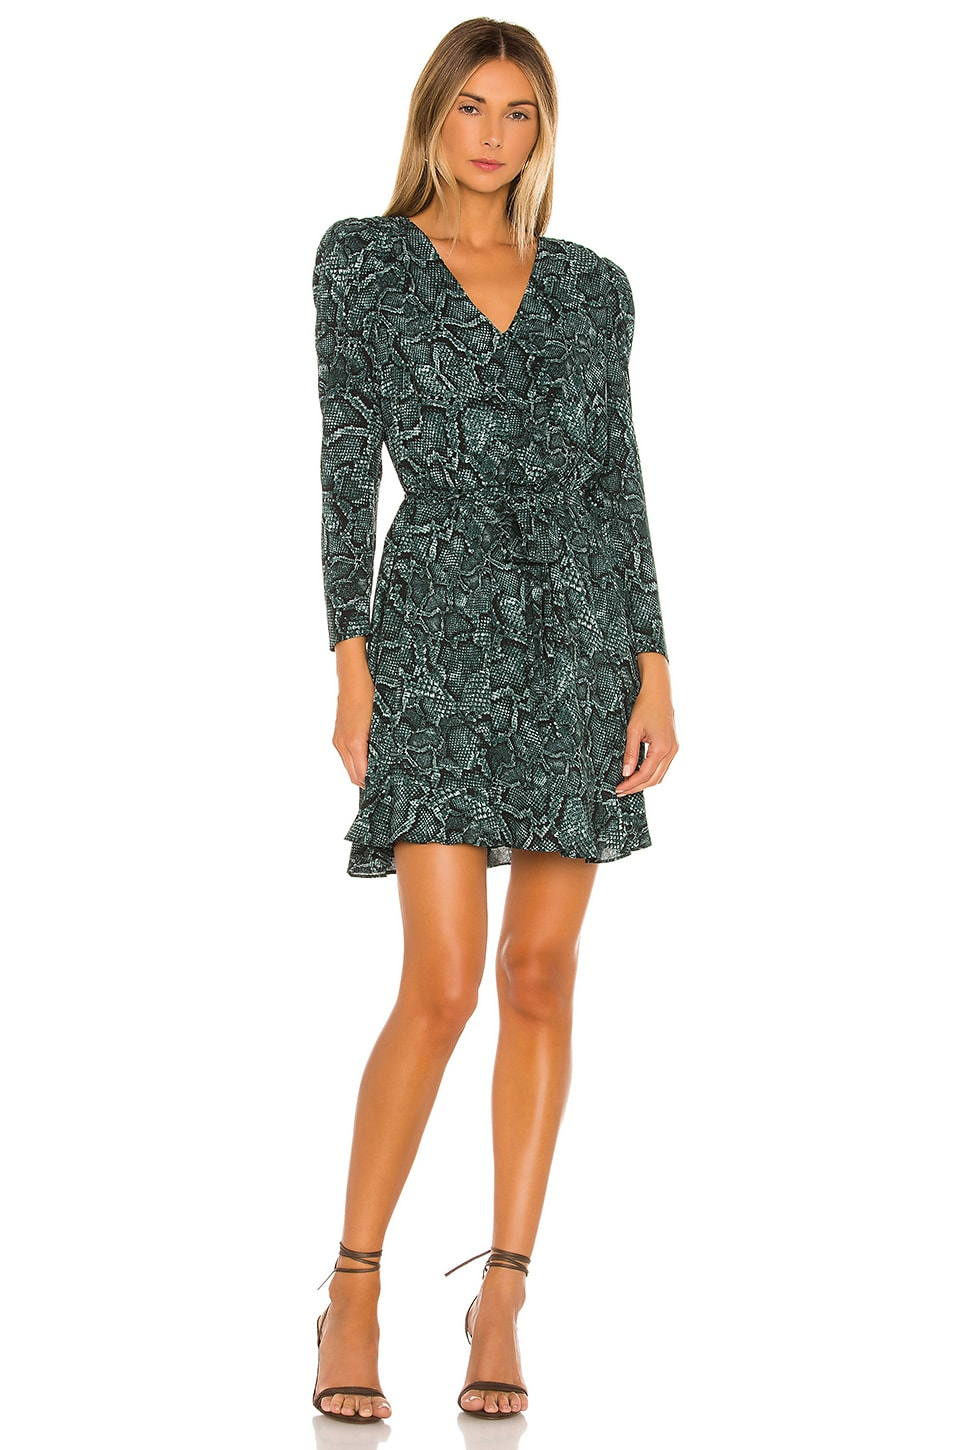 Tie Waist Snake Print Dress             1. STATE                                                                                                                                         Sale price:                                                                       CA$ 113.49                                                                  Previous price:                                                                       CA$ 174.29 15